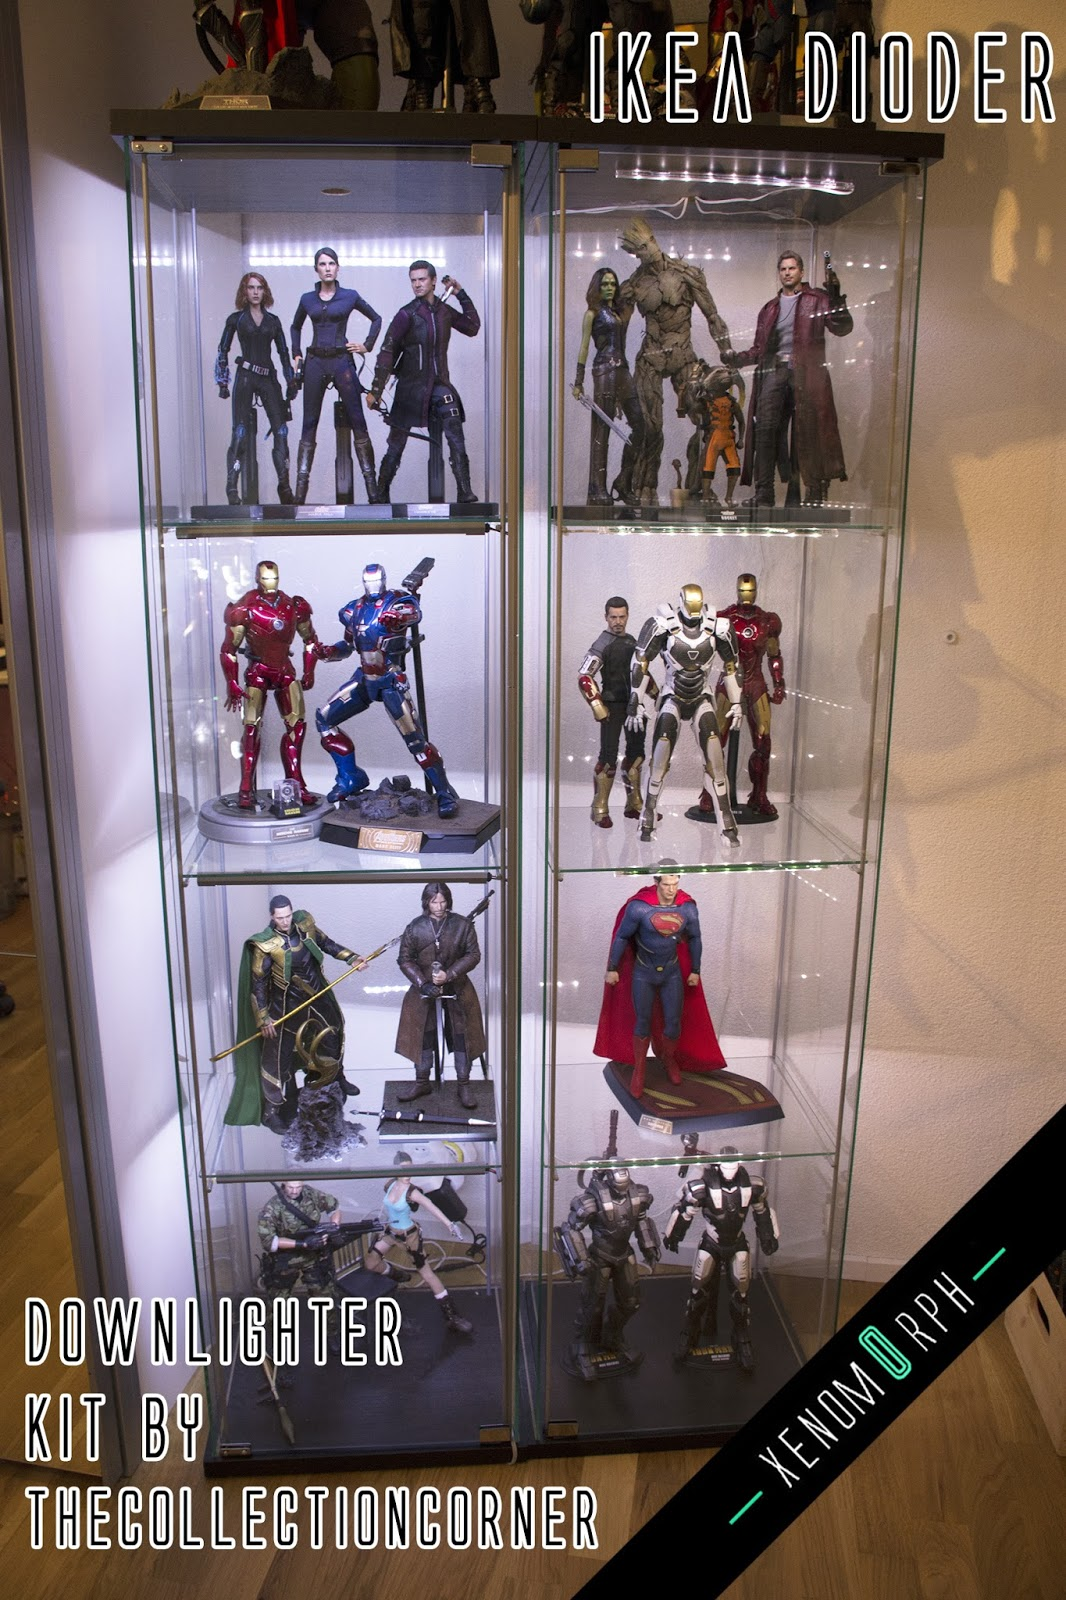 Ikea Detolf Led Kit Quot Downlighter Quot By Thecollectioncorner Com